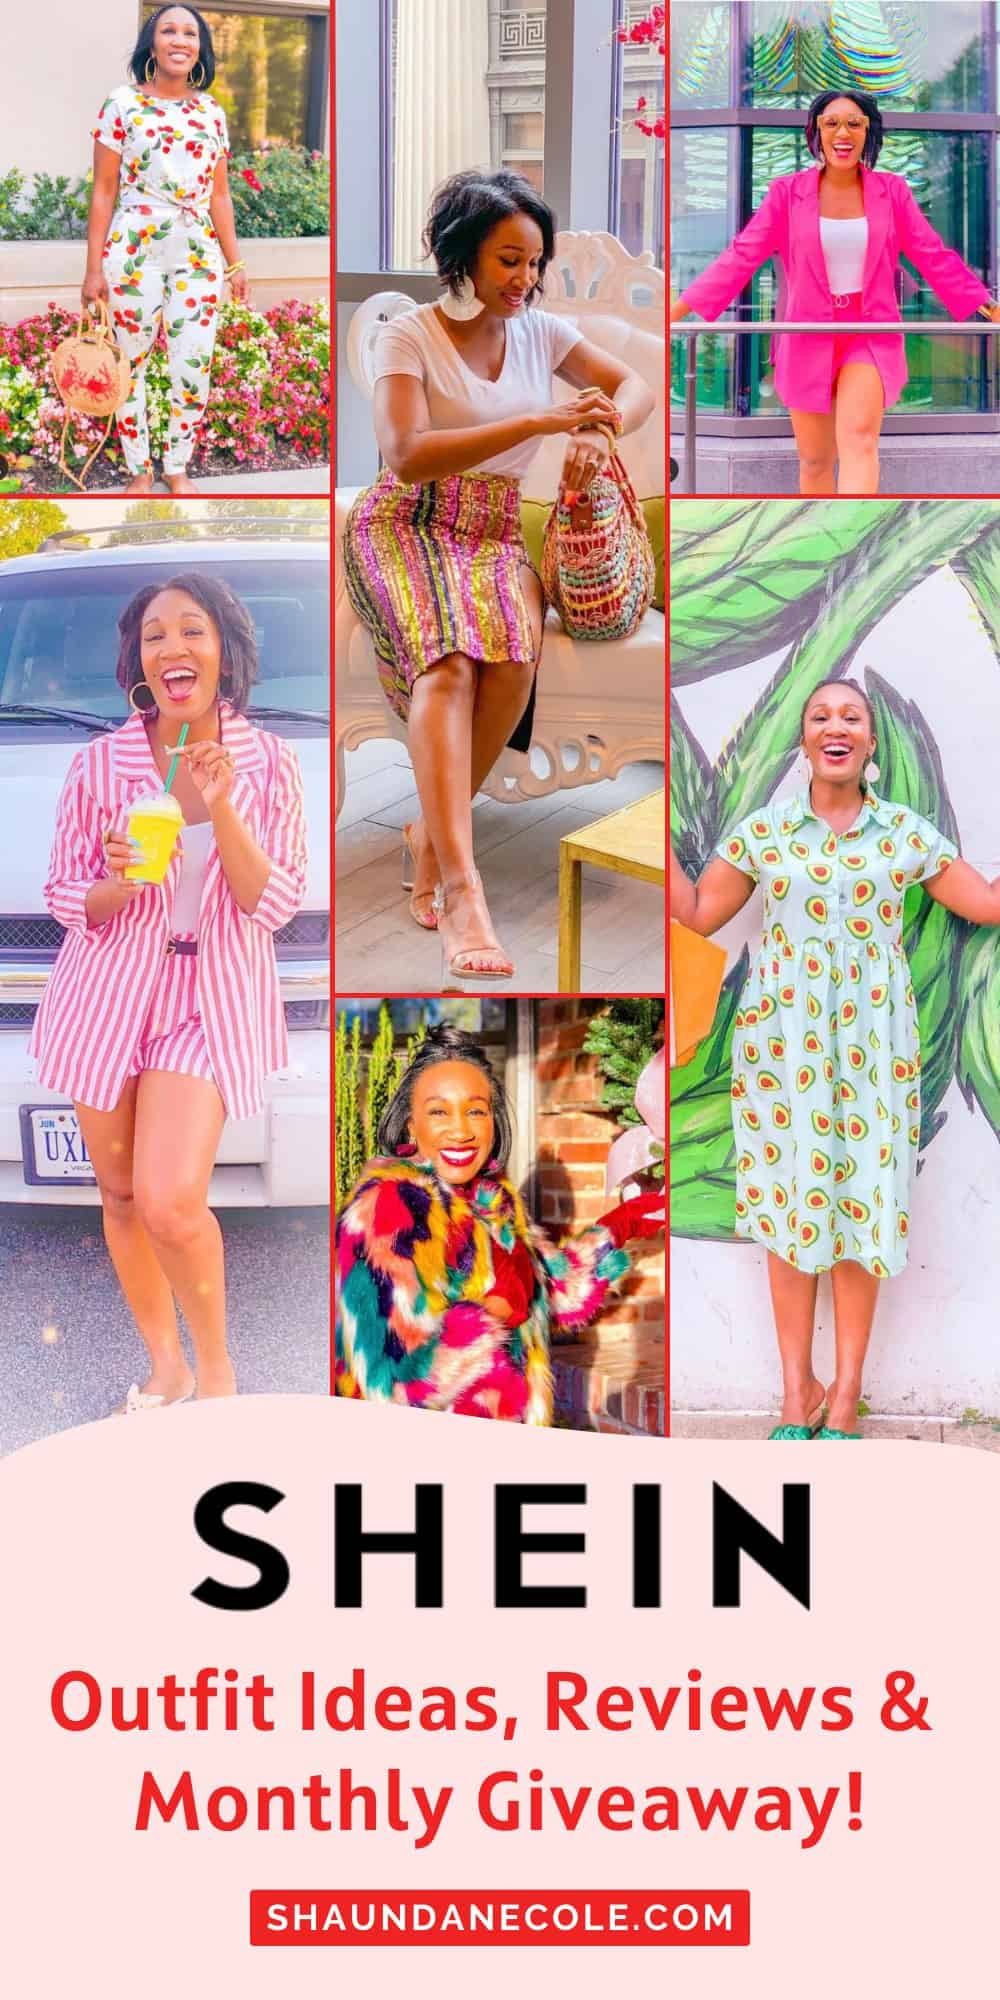 SheIn Outfit Ideas, Reviews & Monthly Giveaway- Why Is SHEIN Clothing So Cheap?